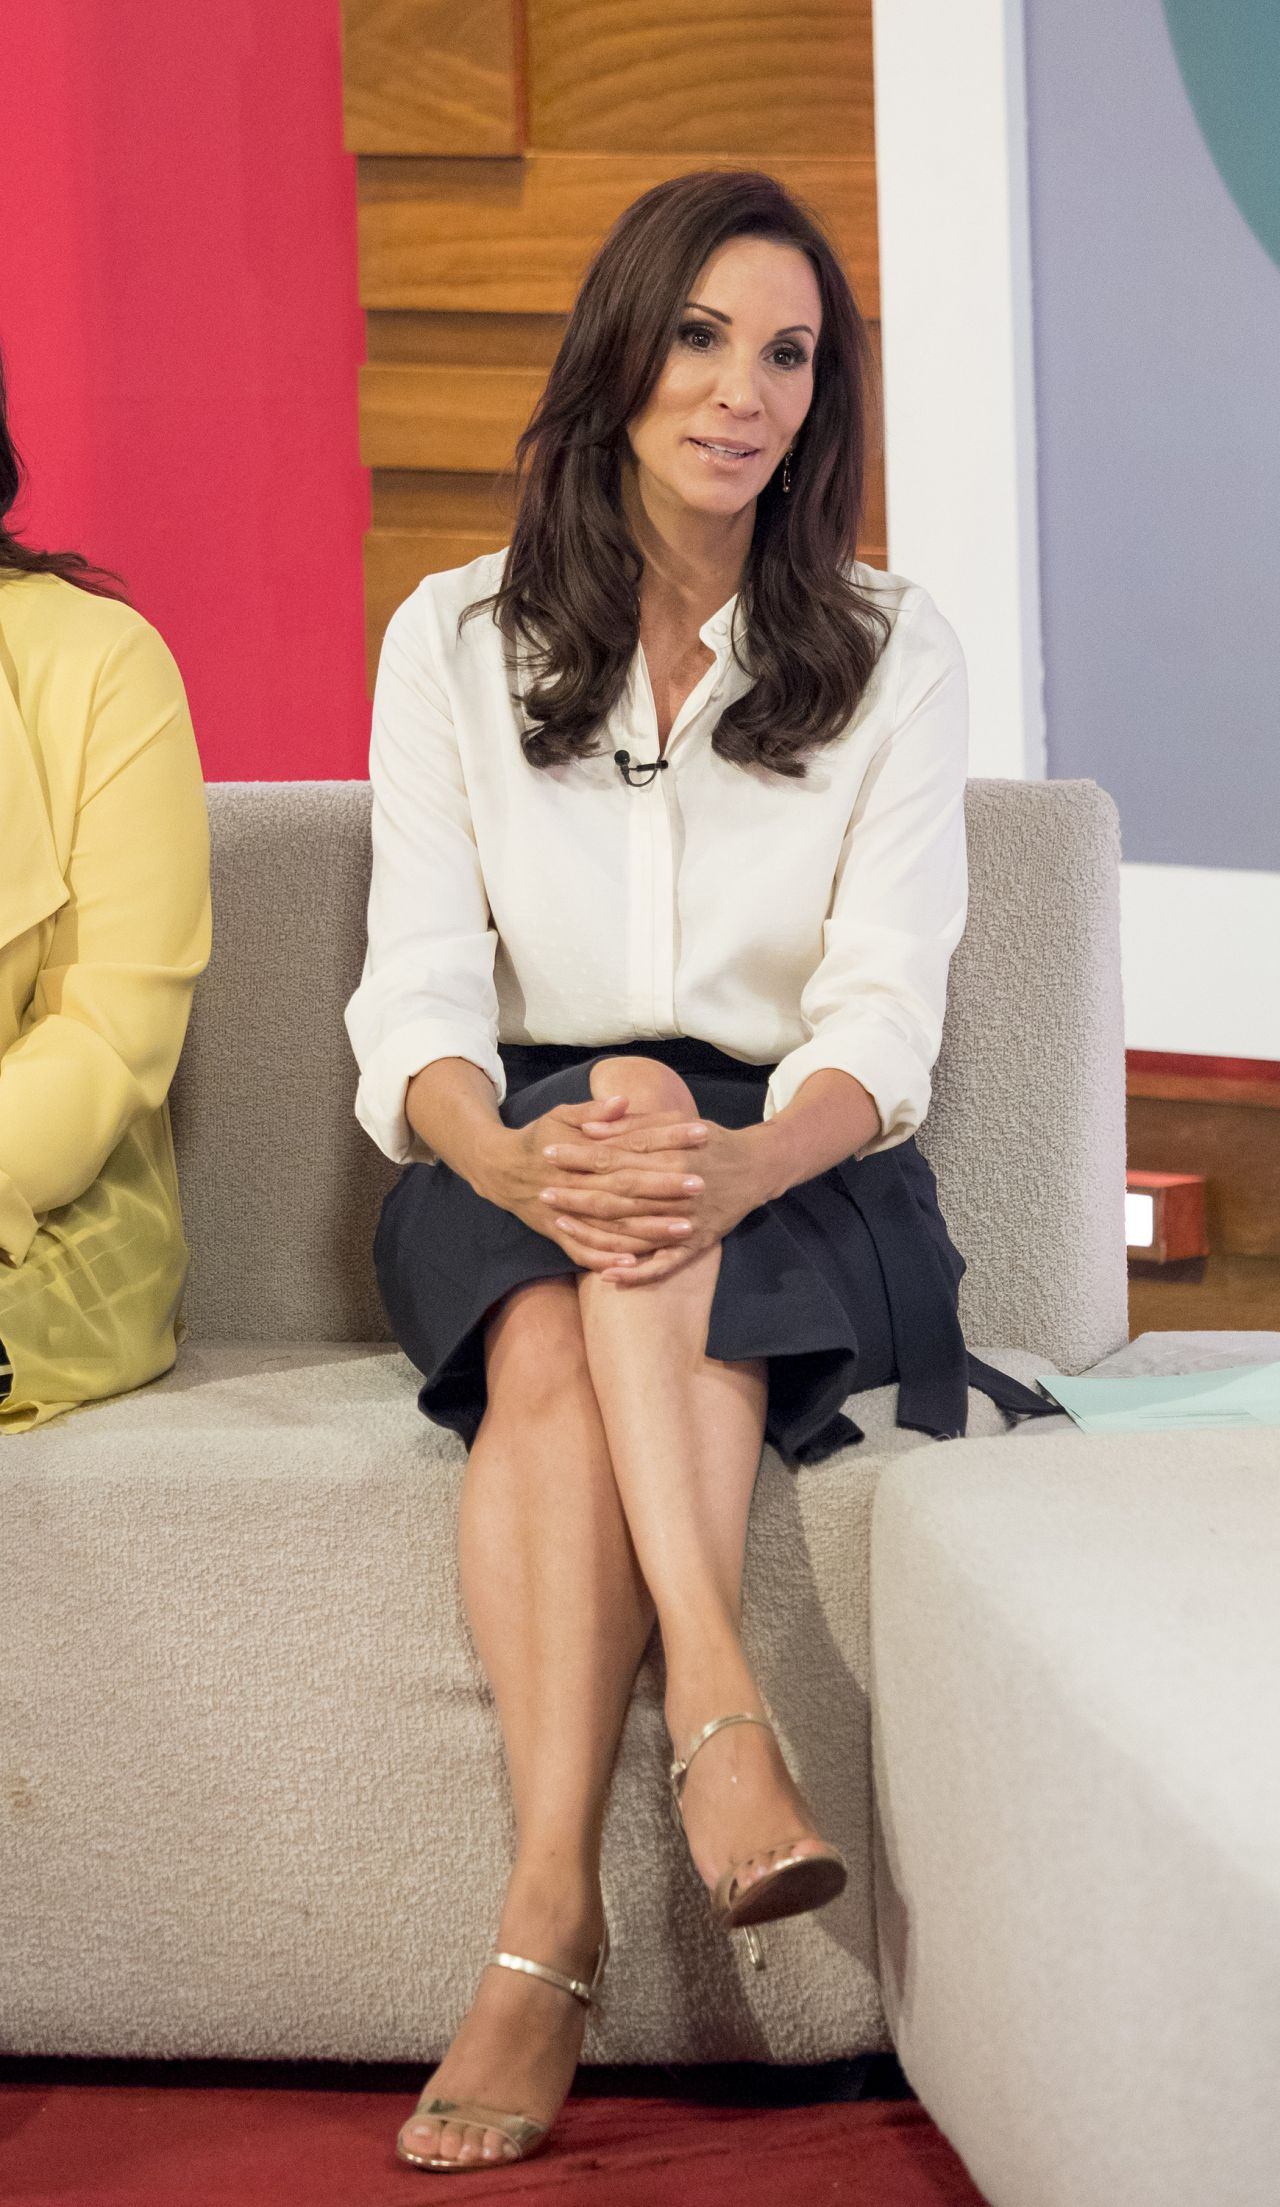 Andrea mclean loose women have